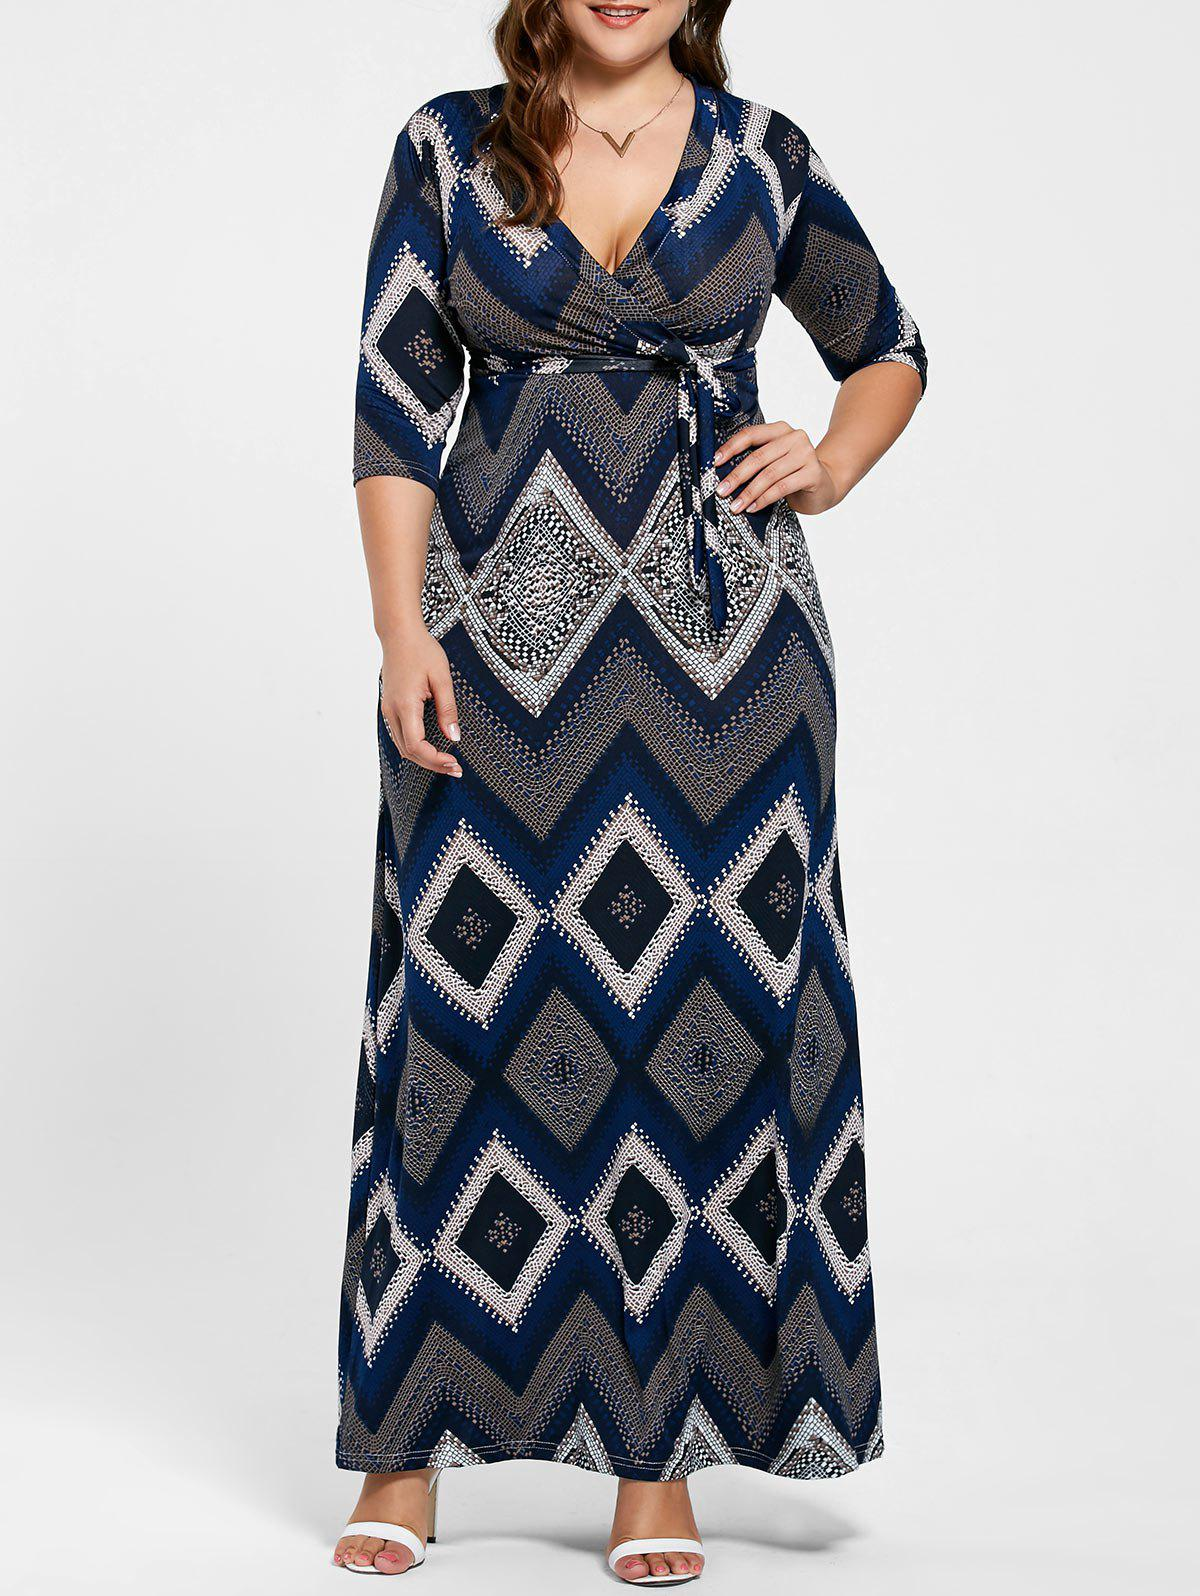 V Neck Geometric Print Long Plus Size DressWOMEN<br><br>Size: 3XL; Color: PURPLISH BLUE; Style: Brief; Material: Polyester; Silhouette: A-Line; Dresses Length: Floor-Length; Neckline: V-Neck; Sleeve Length: Half Sleeves; Pattern Type: Geometric,Print; With Belt: Yes; Season: Summer; Weight: 0.3700kg; Package Contents: 1 x Dress  1 x Belt;